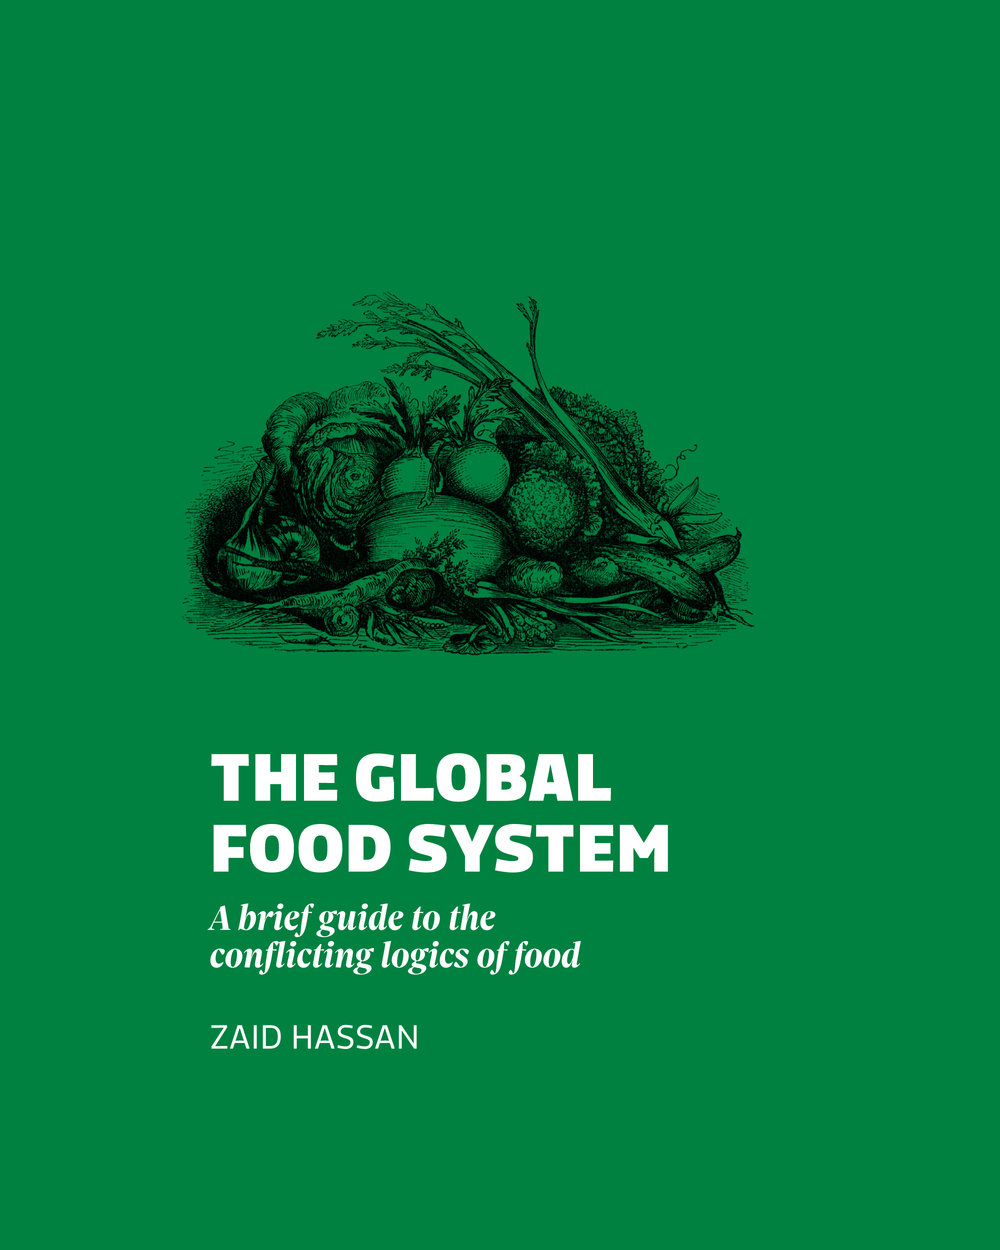 the global food system | 'Paradigm shakers' essay